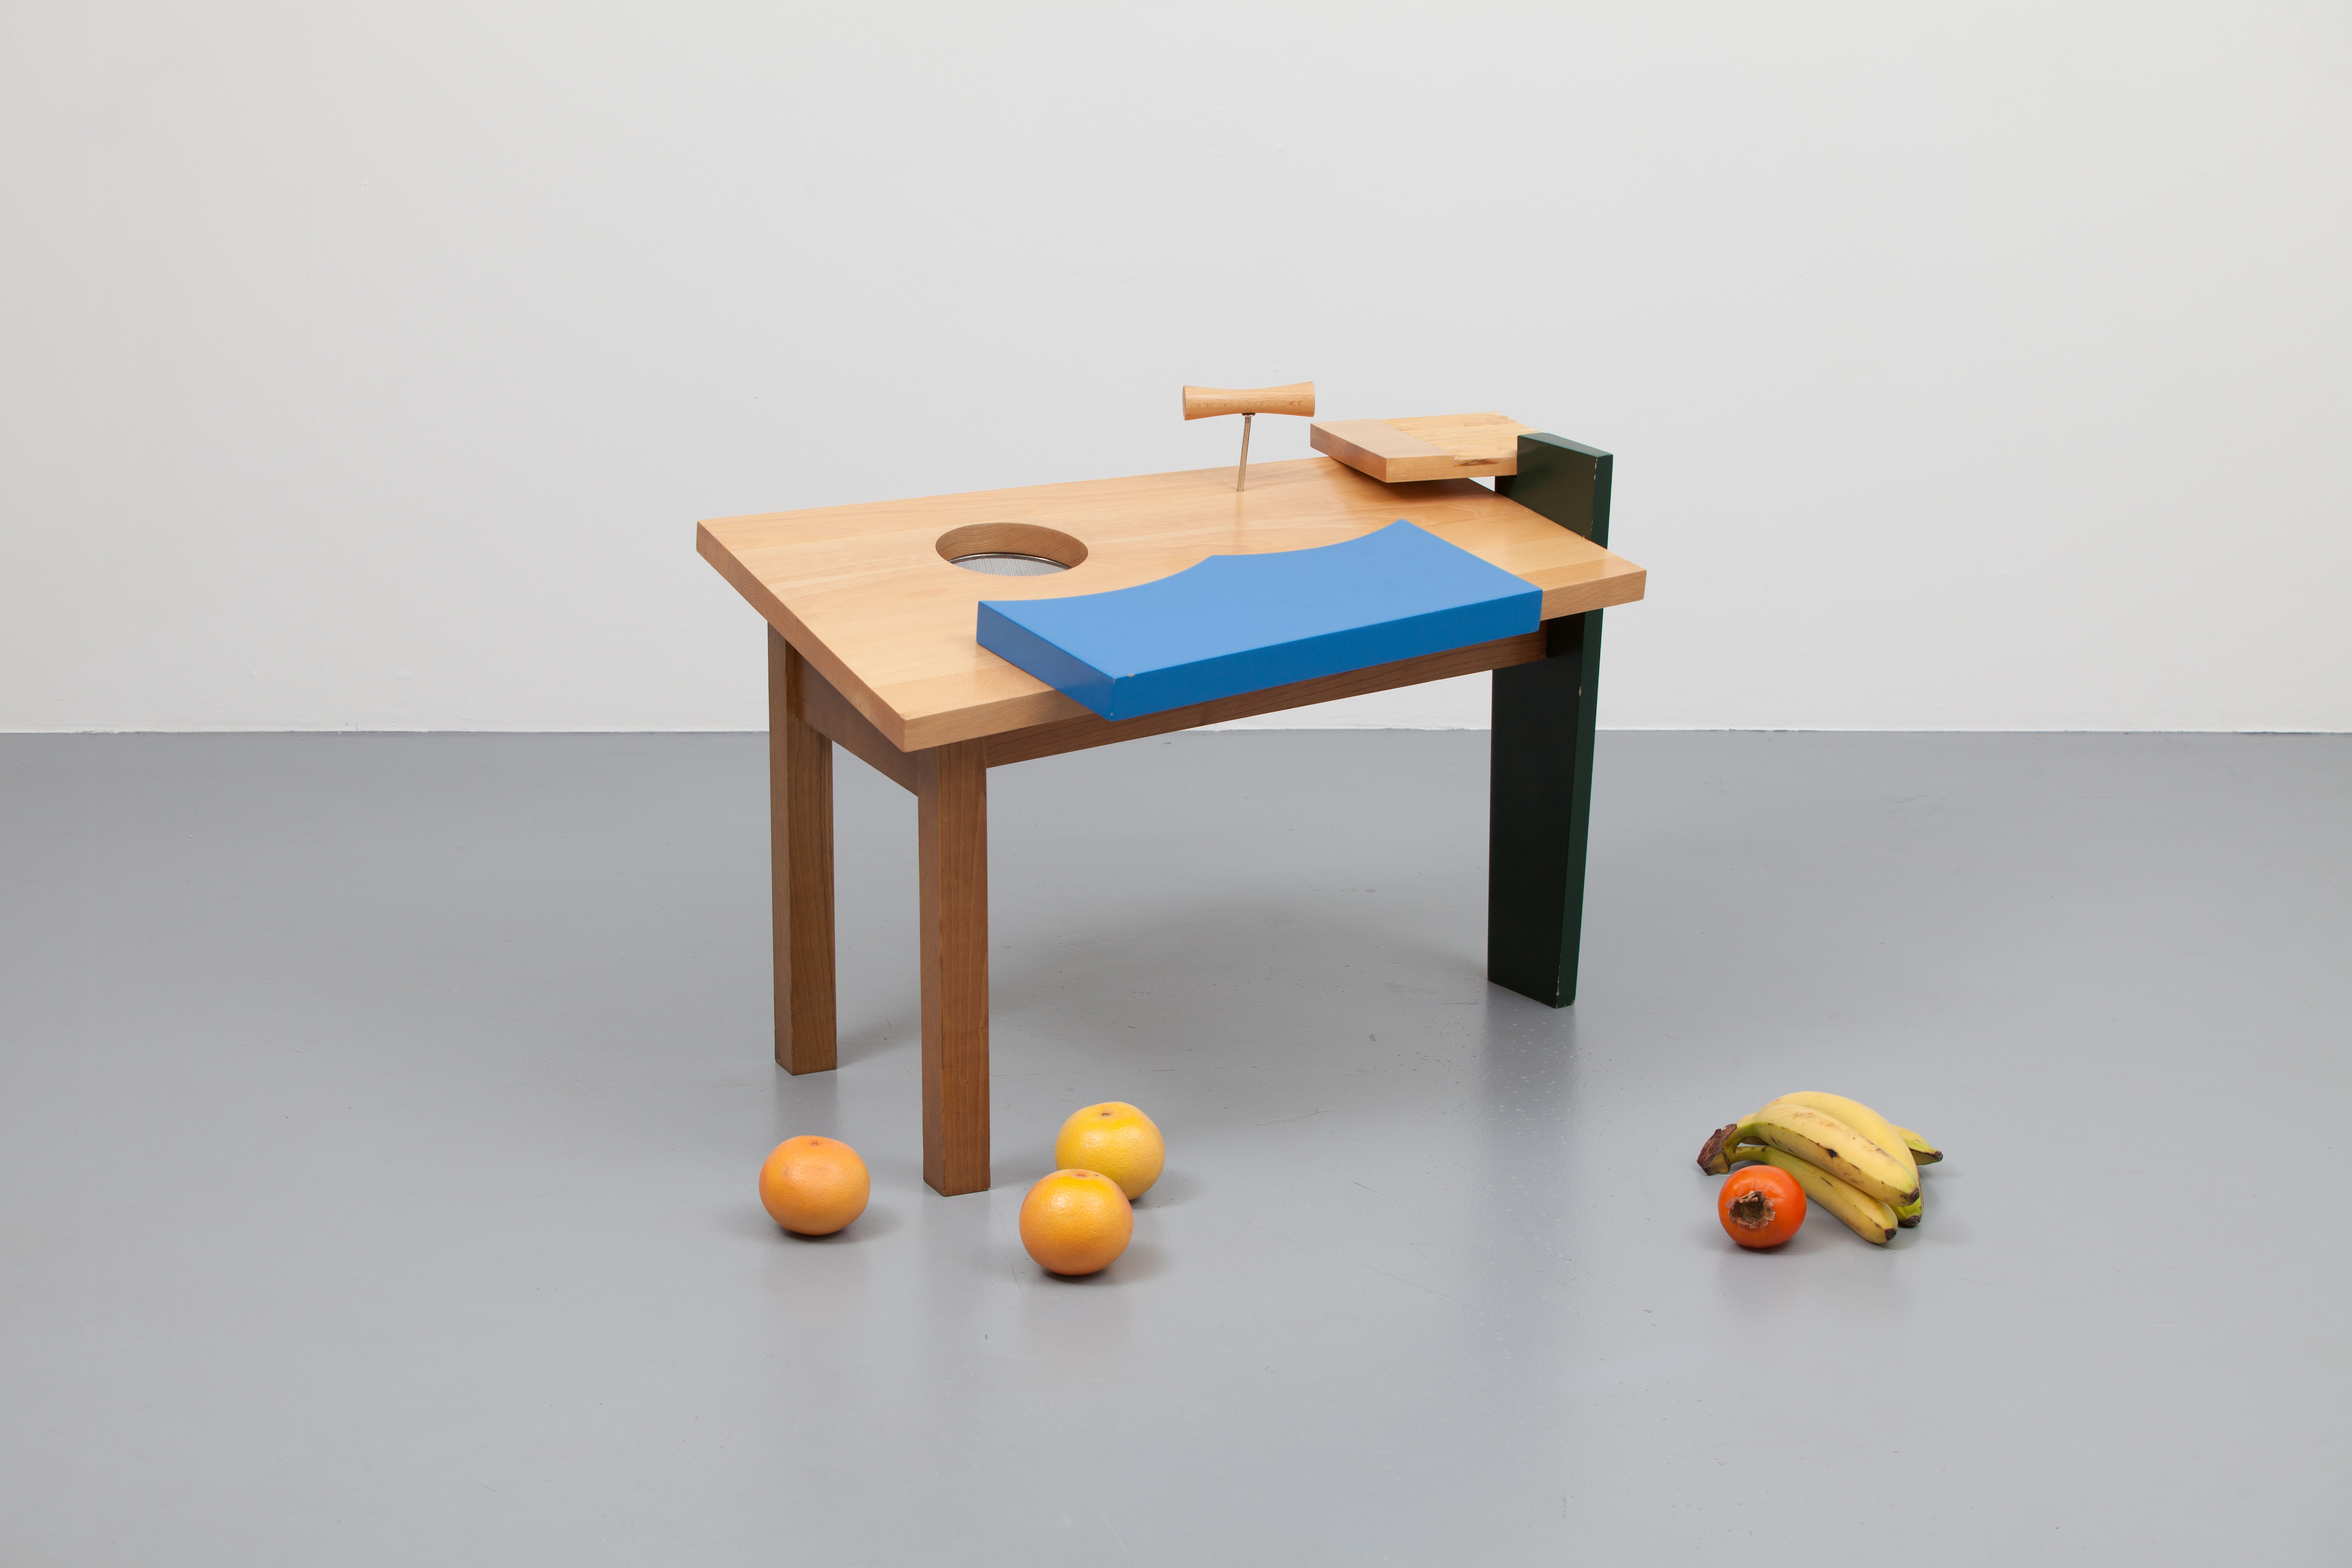 http://a1043.com/wp-content/uploads/Daniel-Weil-Fruit-table_002.jpg